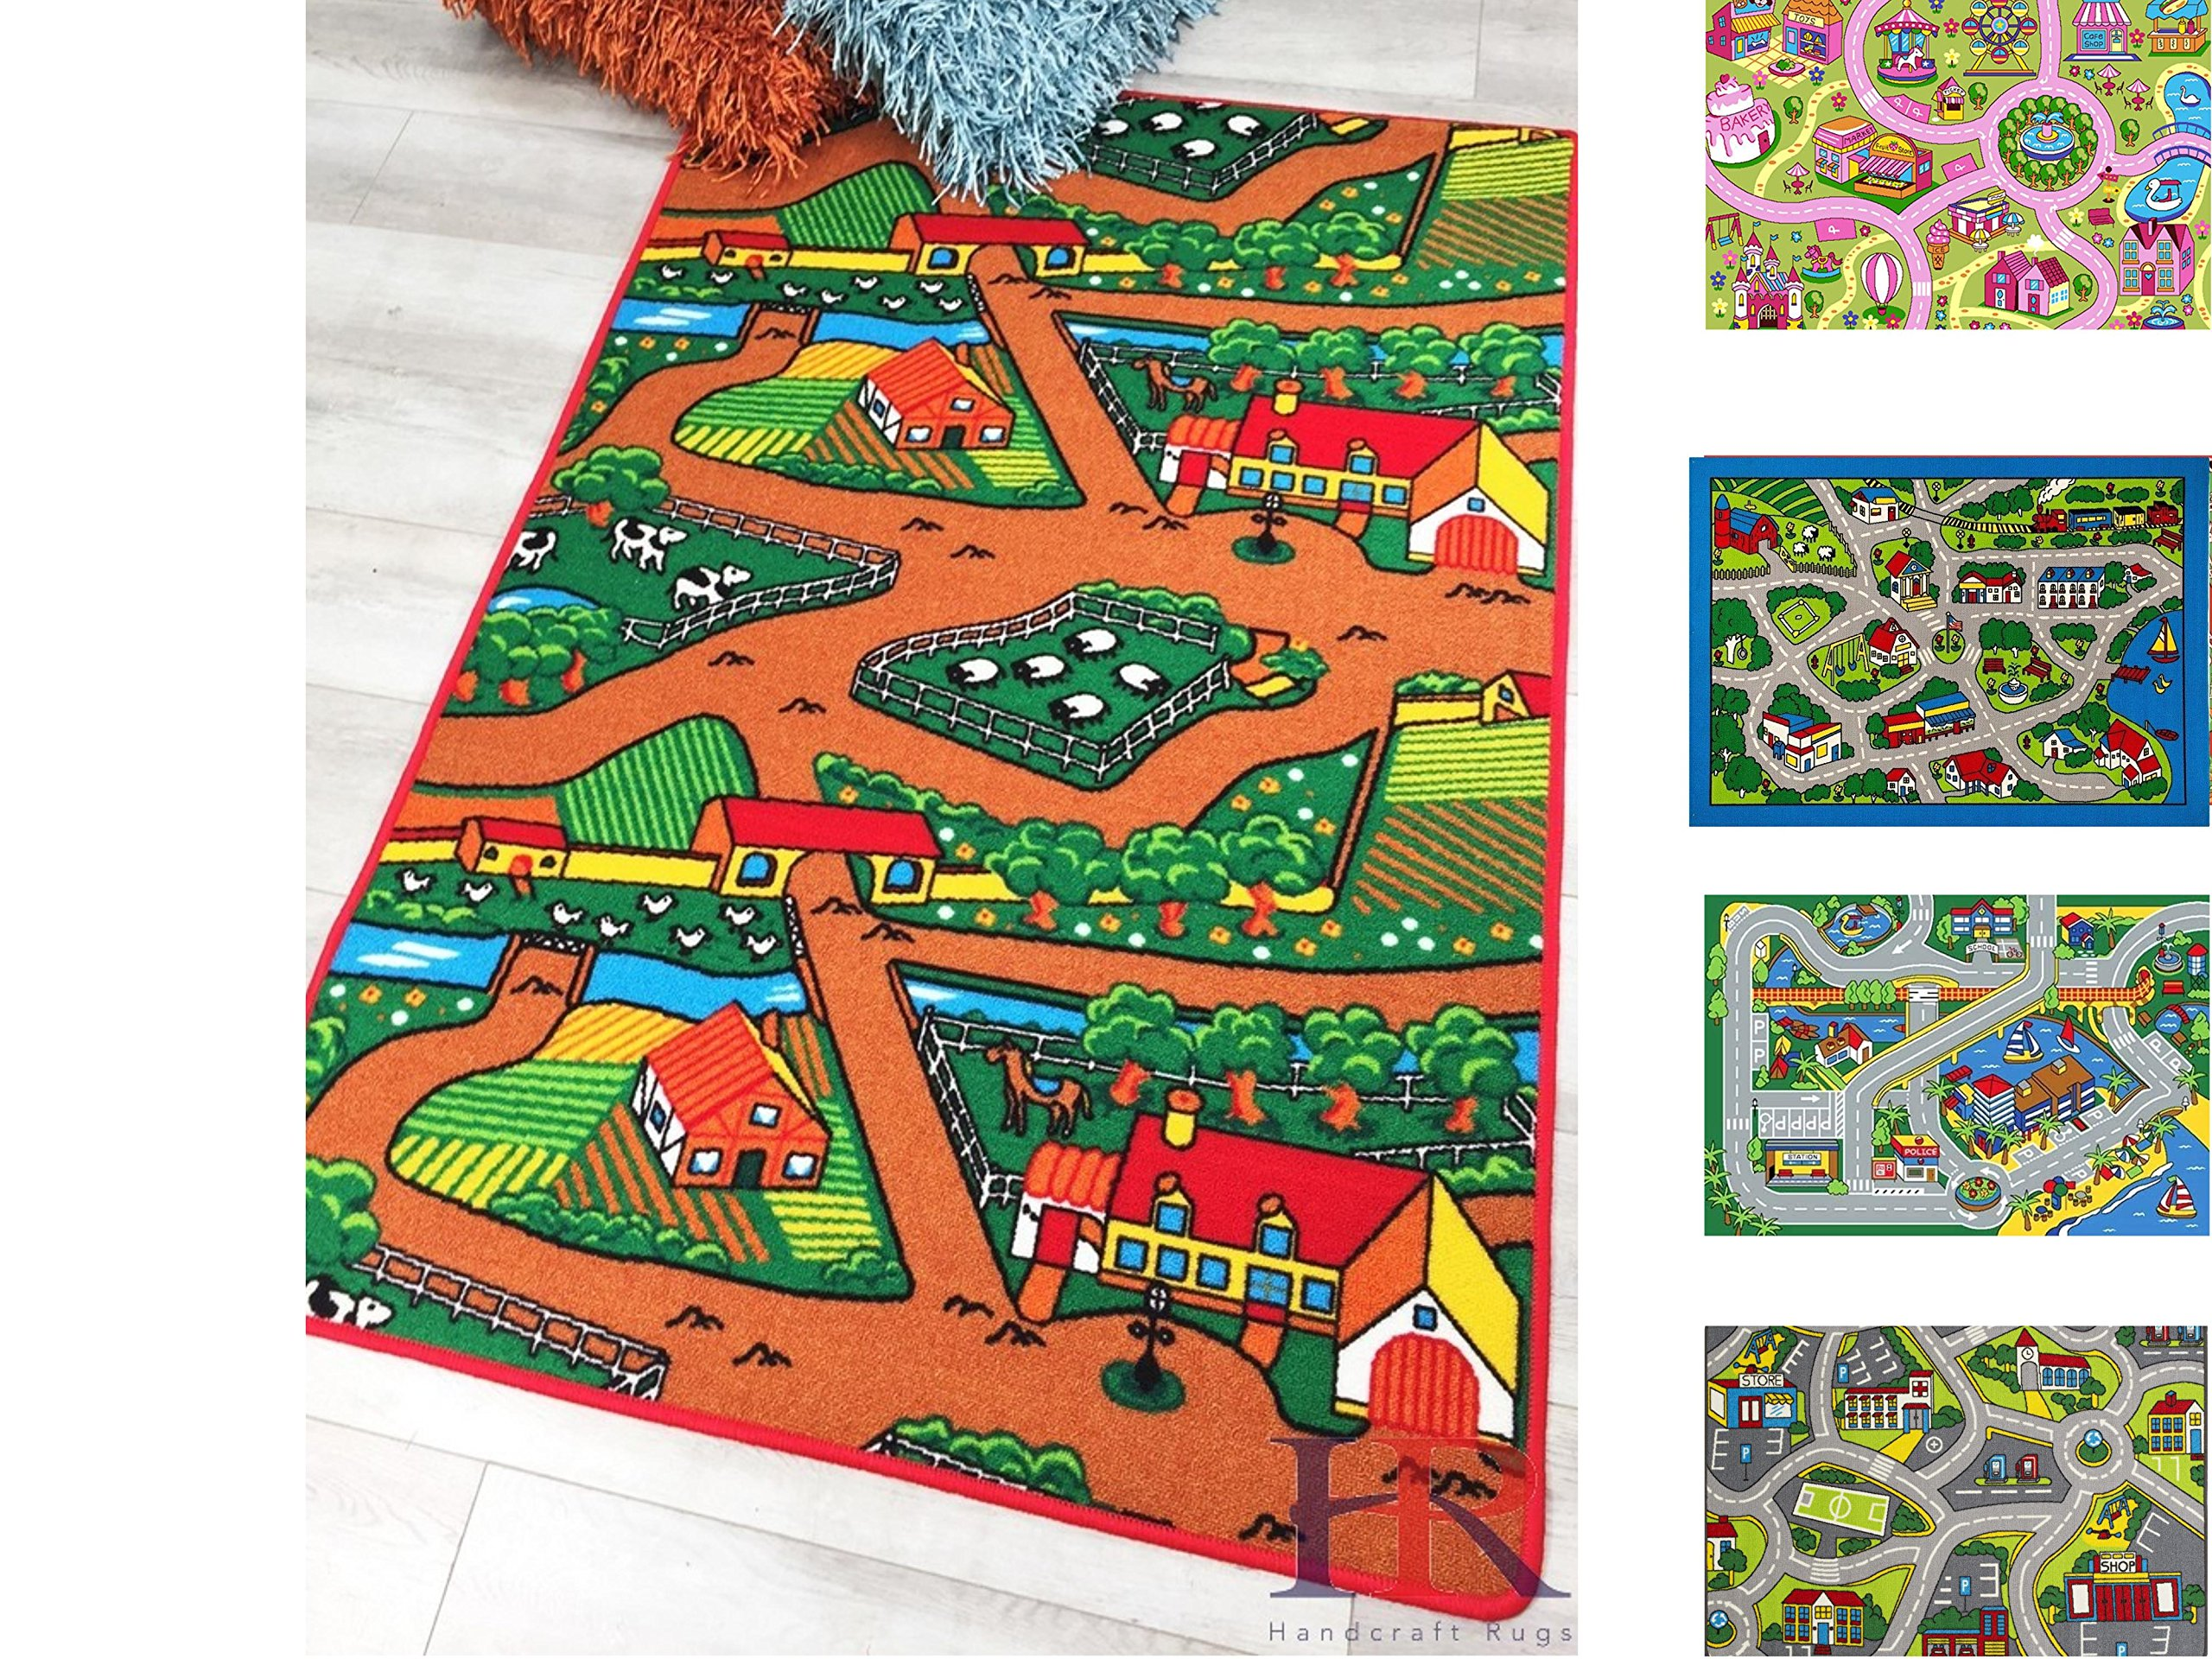 Handcraft Rugs Kids Rugs by My Farm Pattern of Road Driving Fun Brown/Green and Multi Anti Slip Rug/Game Carpets for Kids/Kids Toy/Kids learning Floor mat (Approximately 3 feet by 5 feet)